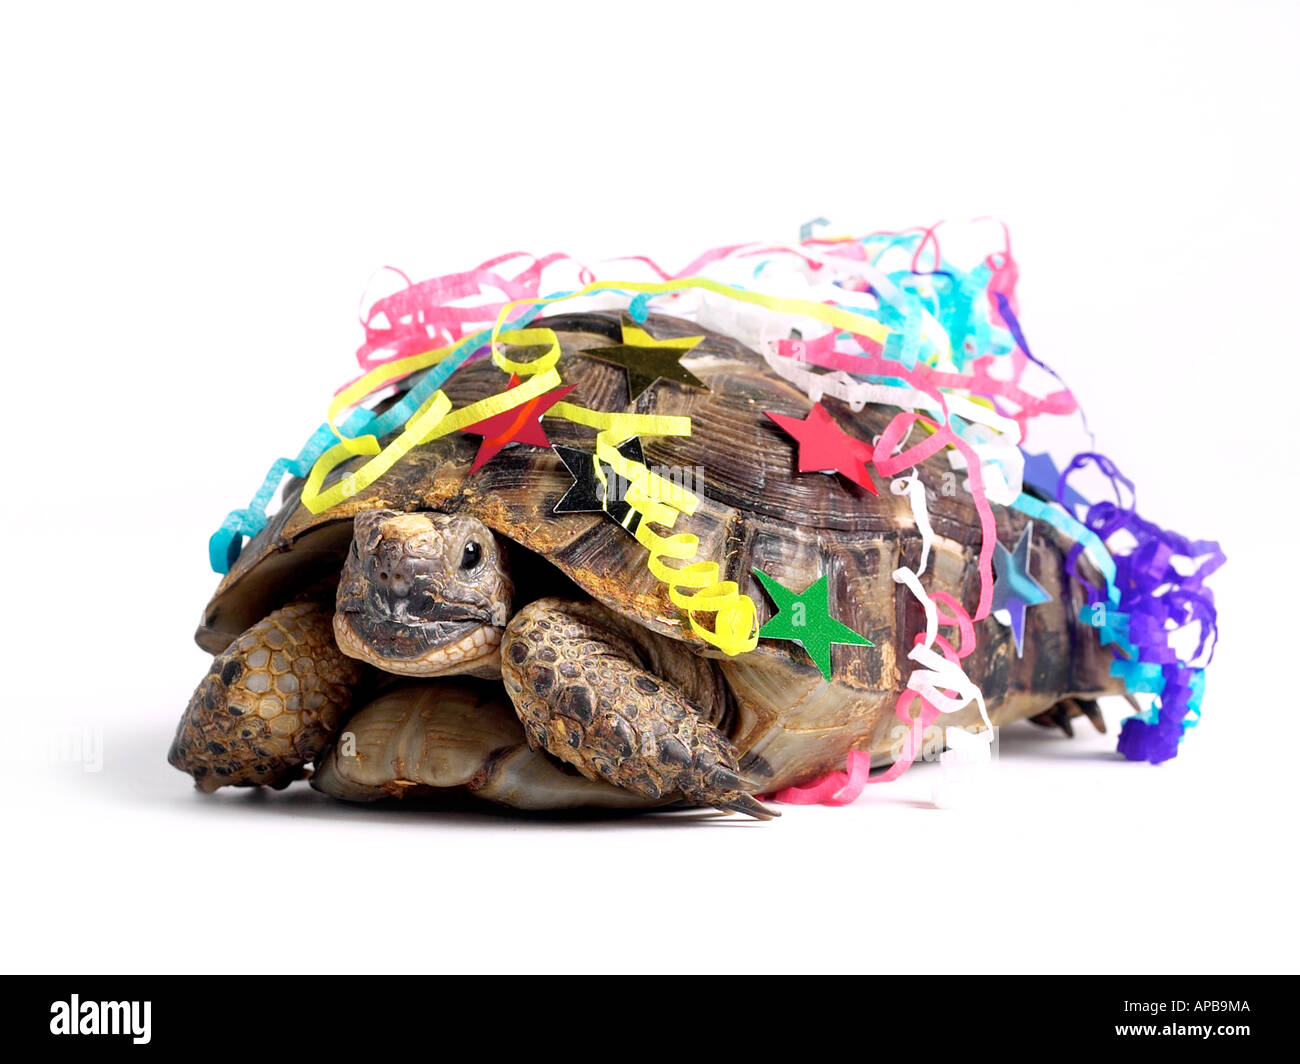 A tortoise dressed as a party animal. - Stock Image